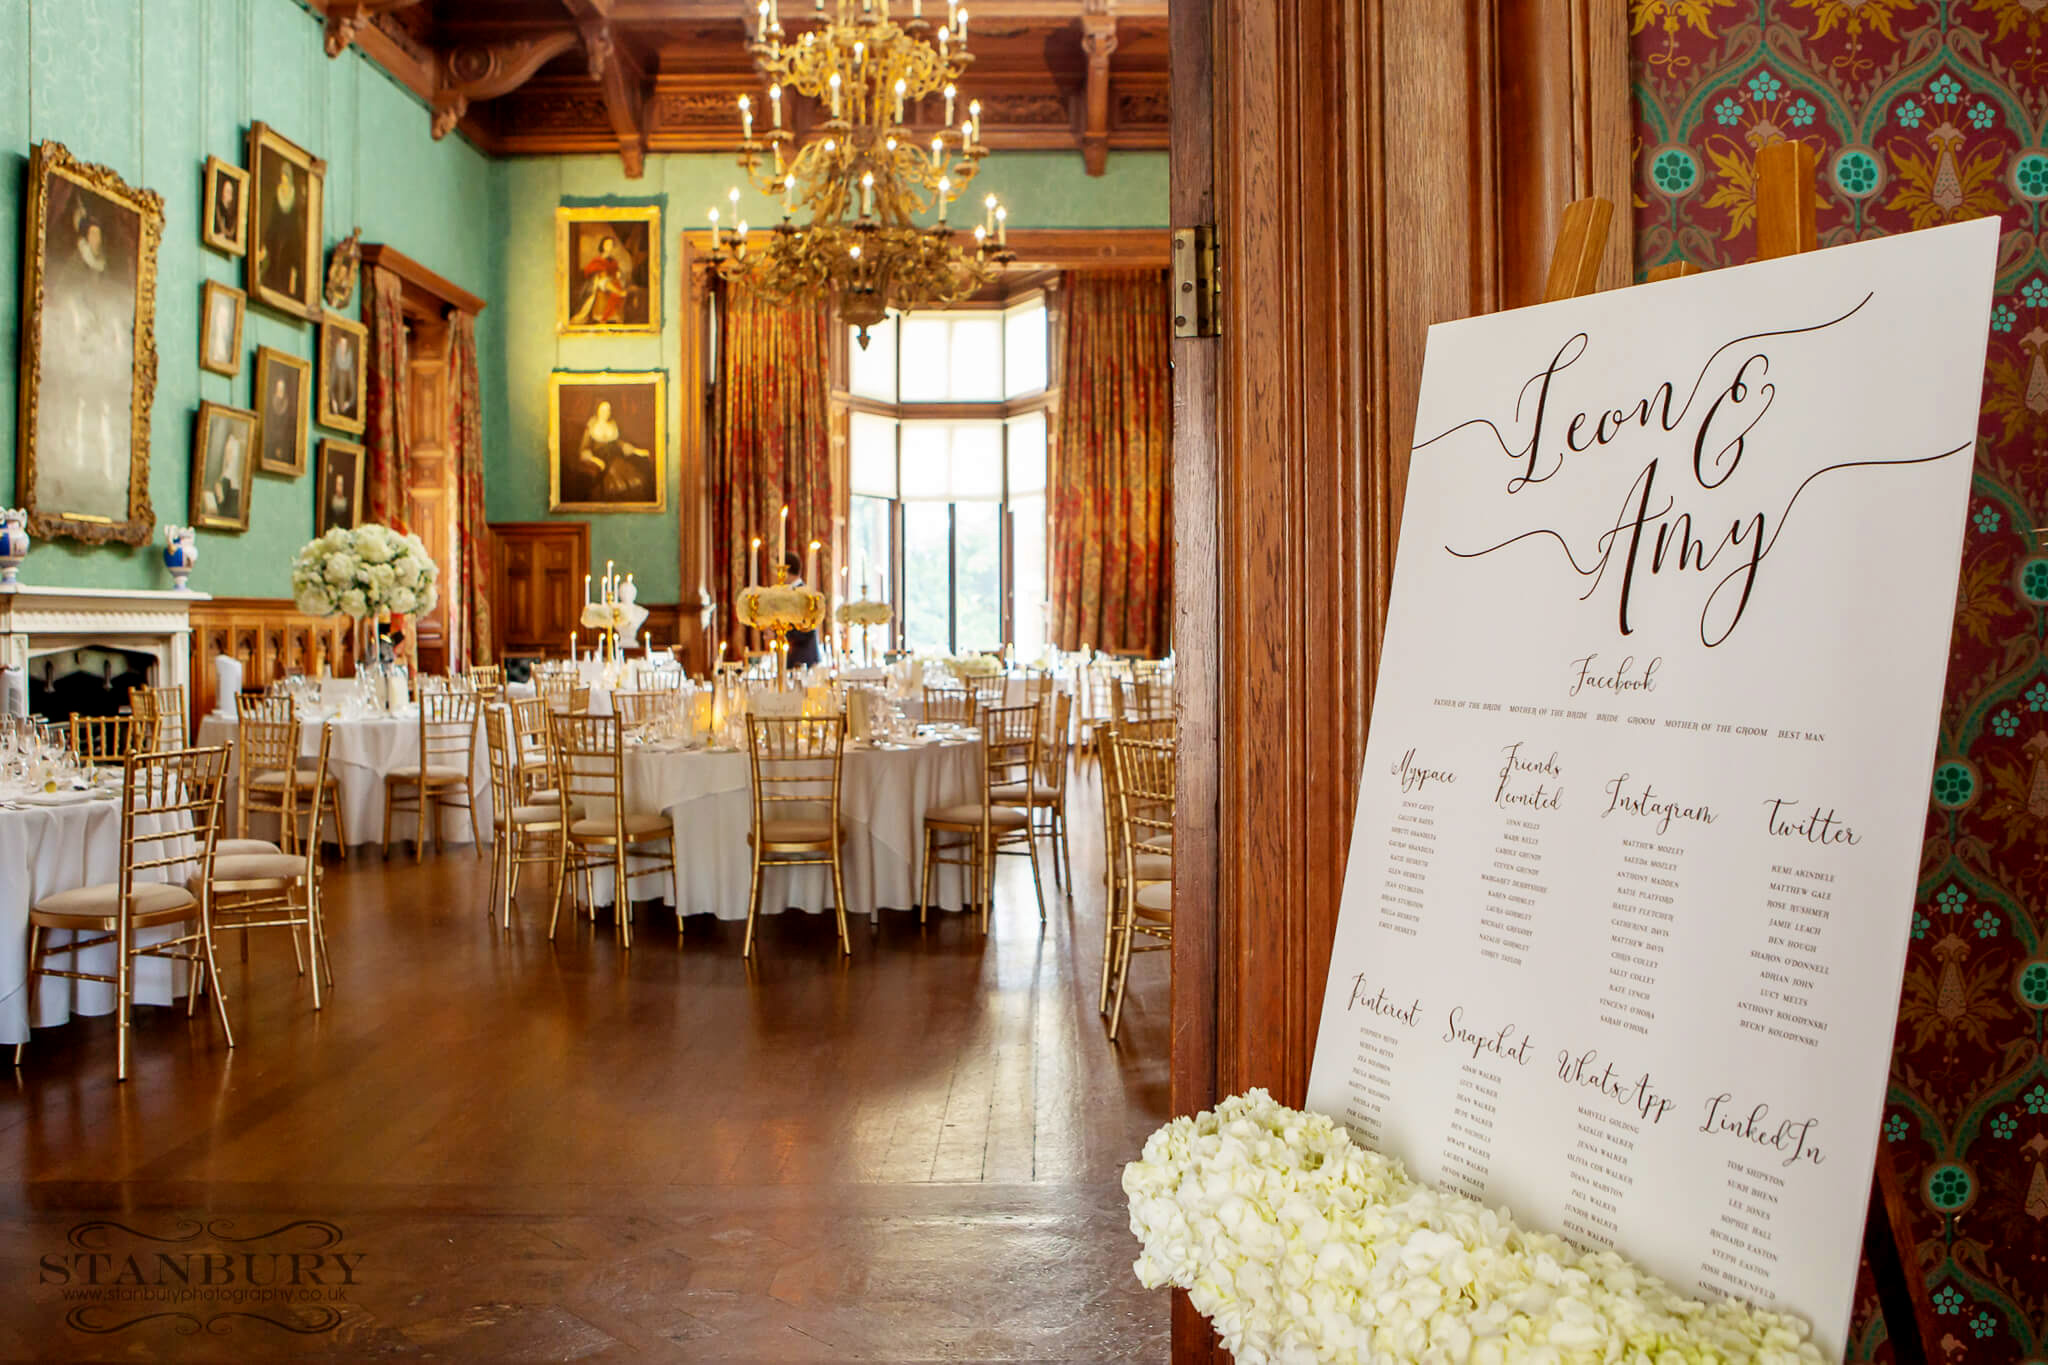 knowsley-hall-wedding-stanbury-photography-027